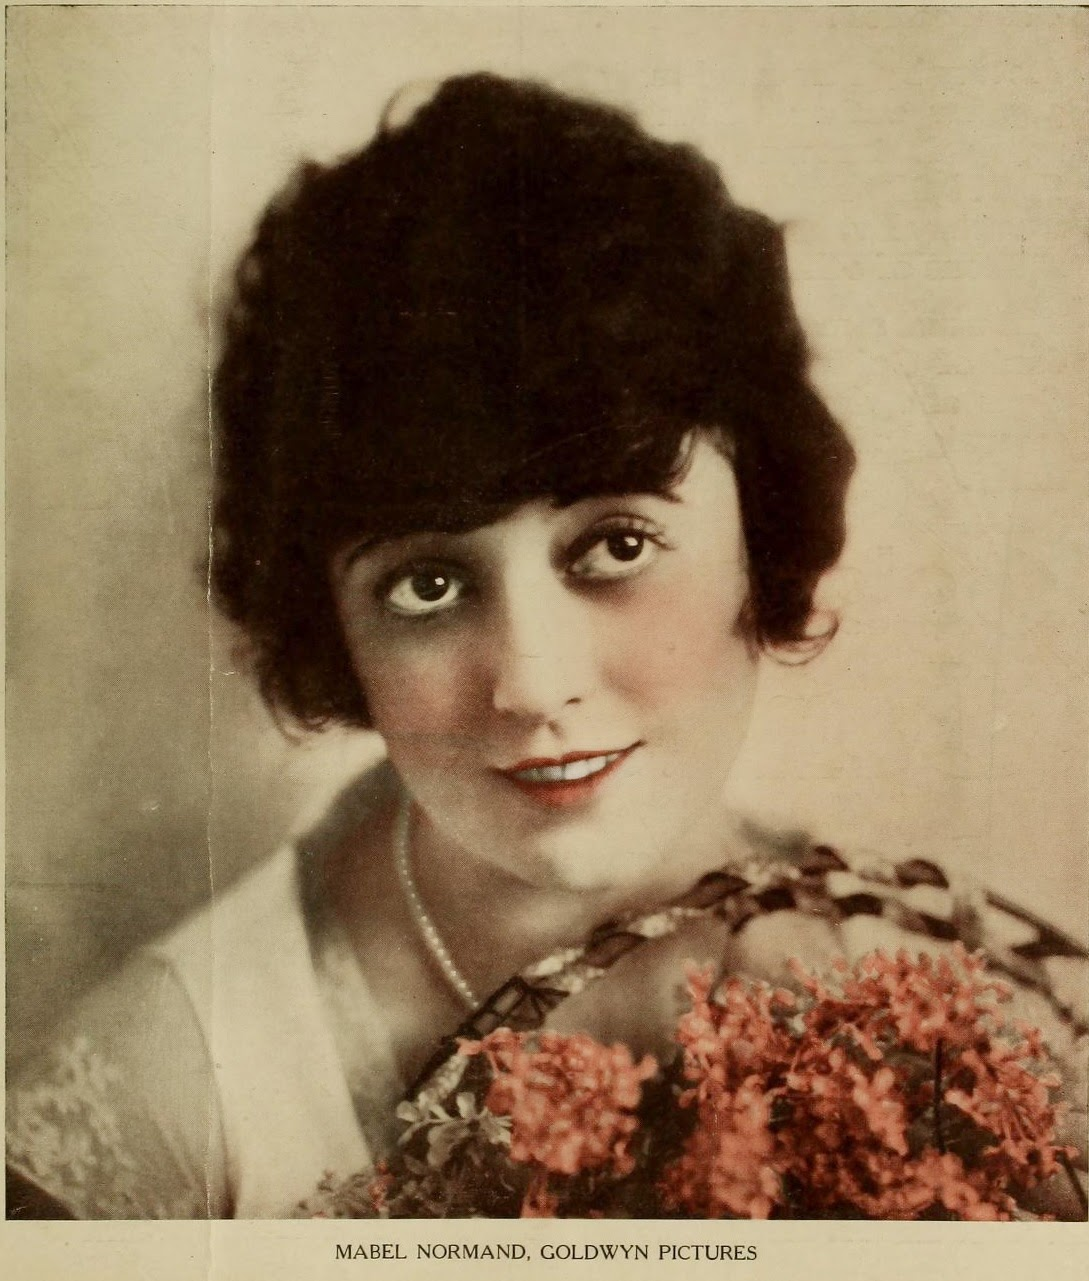 mabel normand documentary